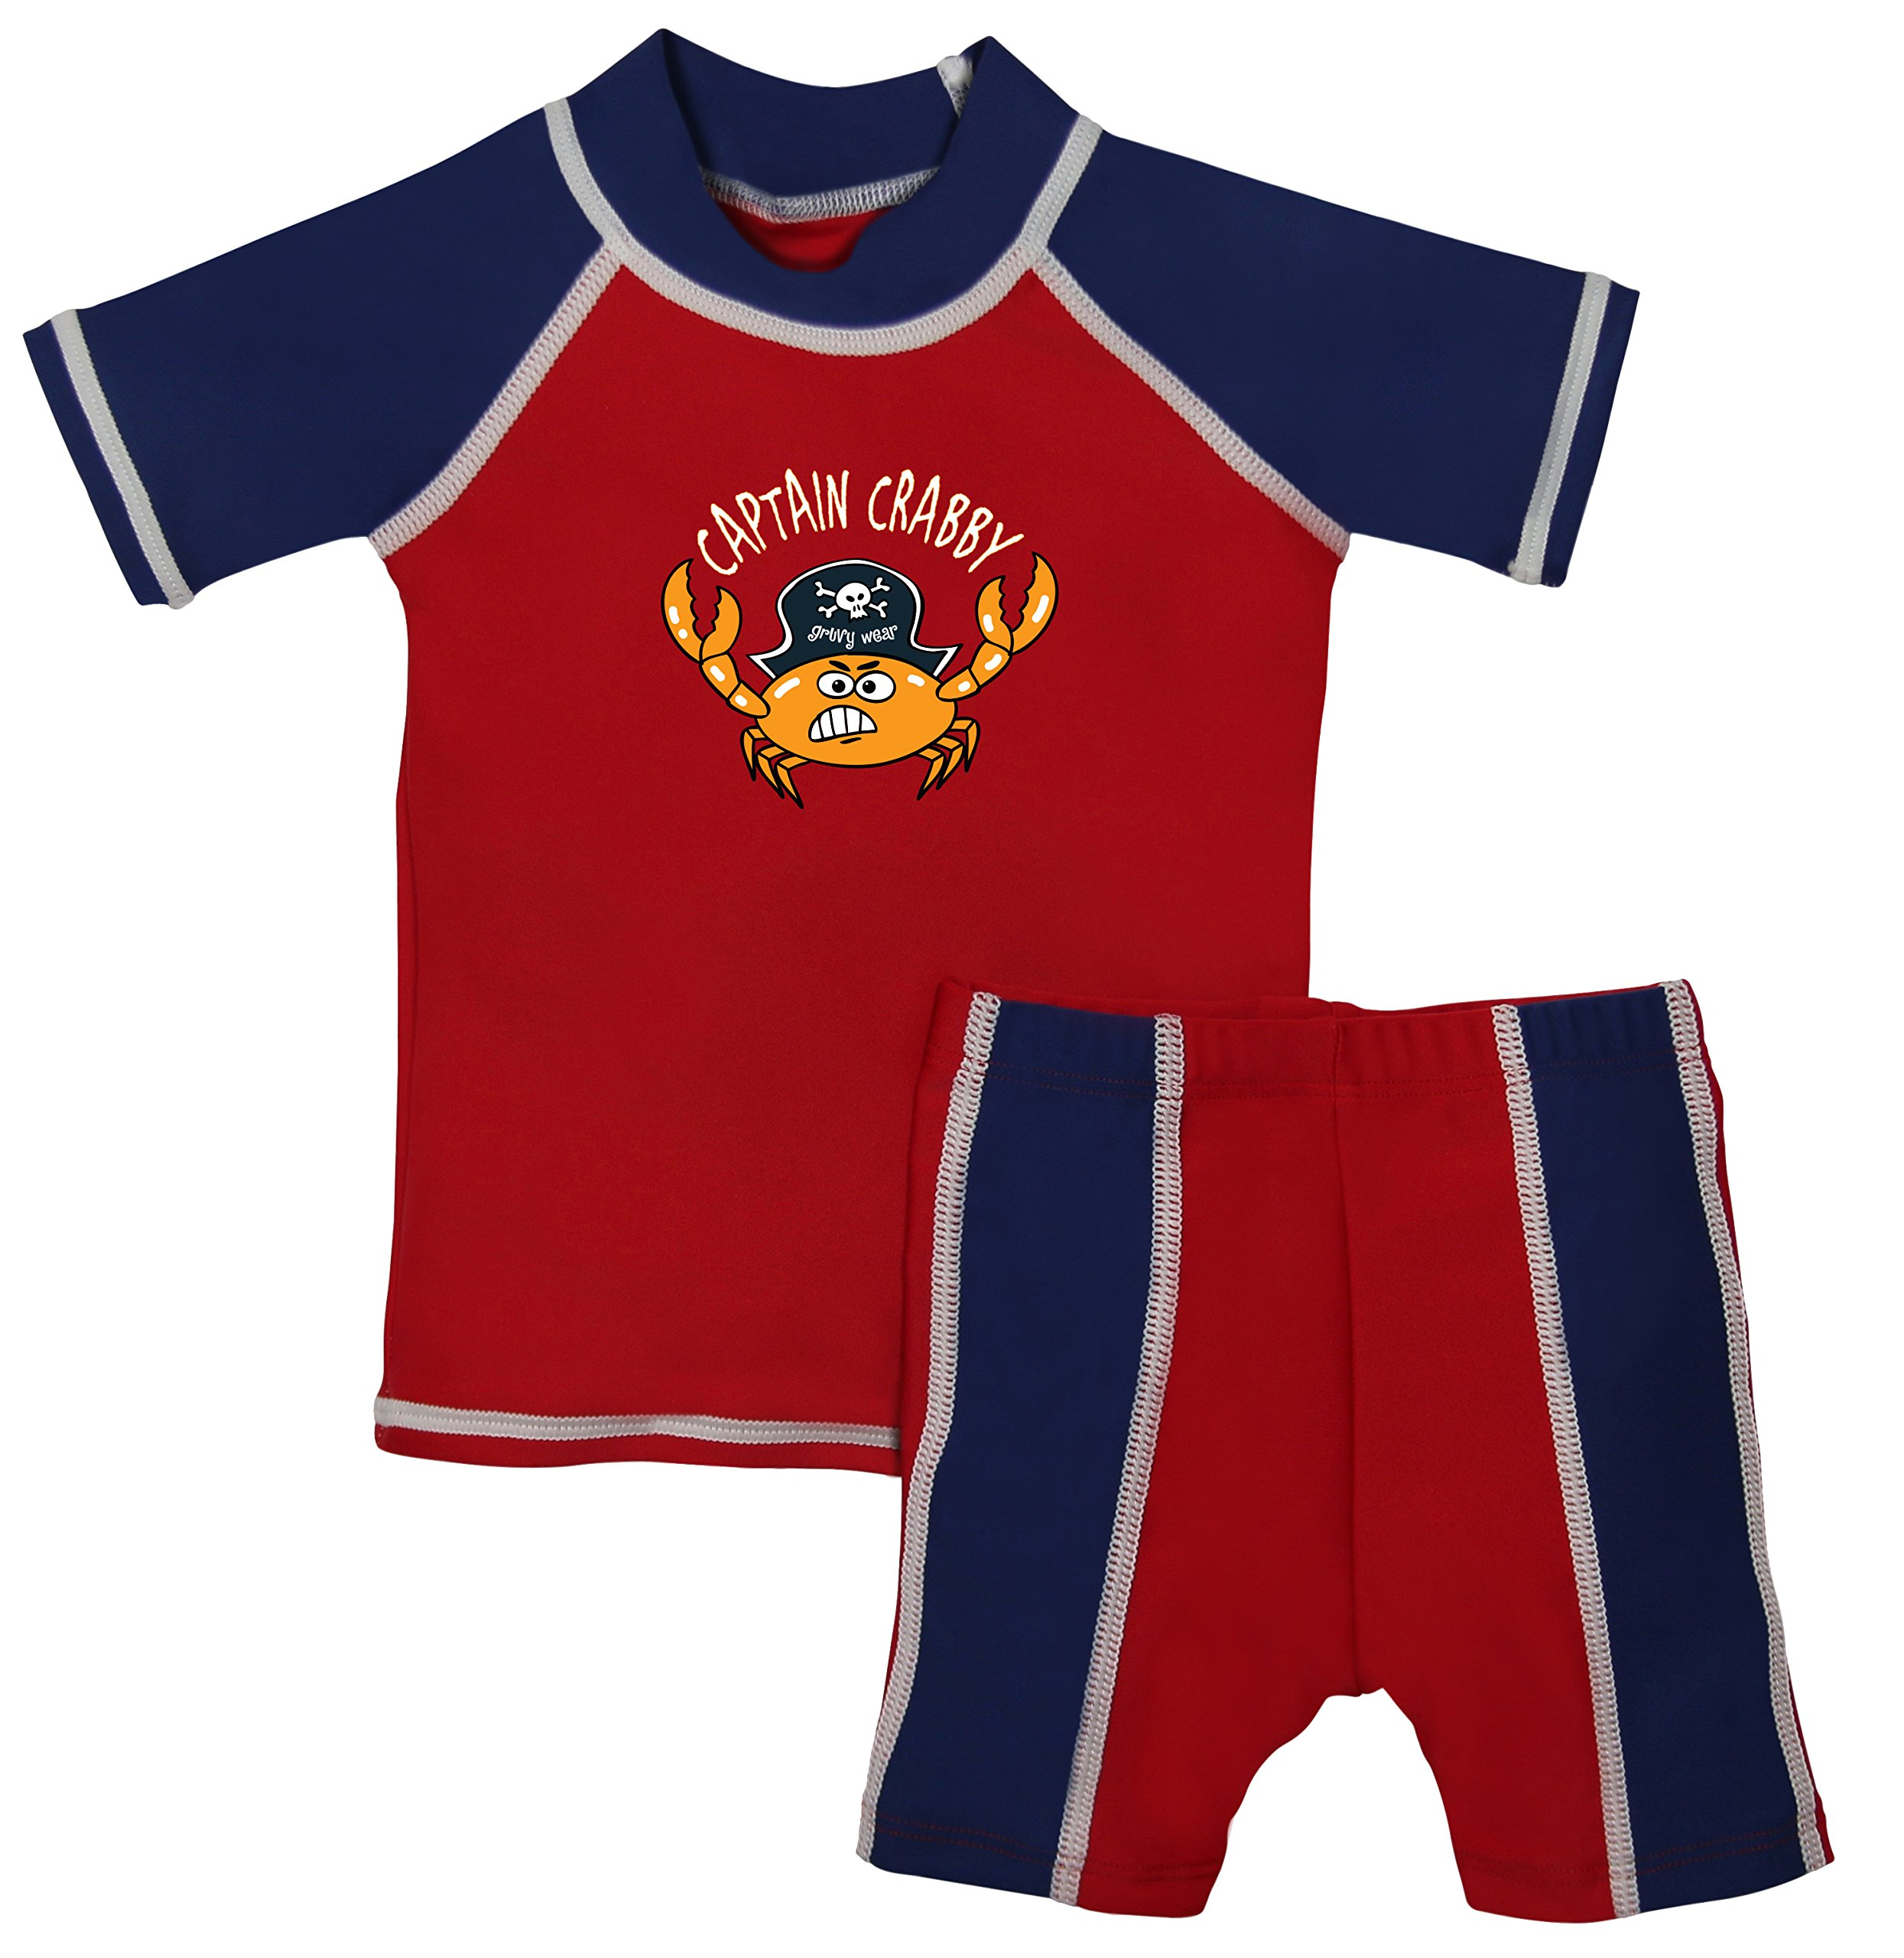 grUVywear Baby Boy Rash Guard Set - UV Shirt and Shorts - Sun Protective Swimwear Baby Boy Rash Guard Swimwear Set 6-12m, Captain Crabby by grUVywear